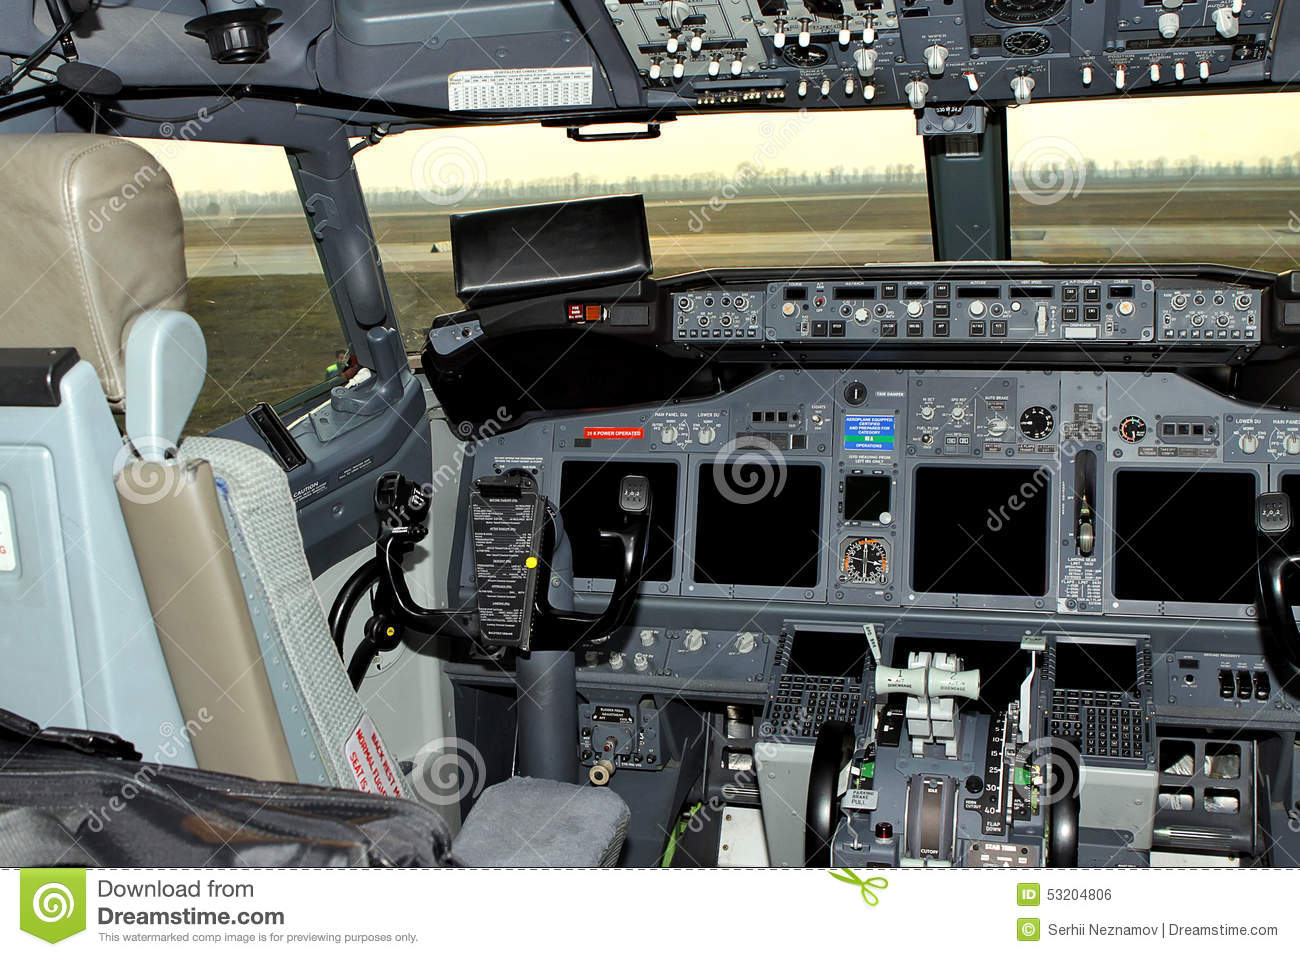 Airliner - Wikipedia